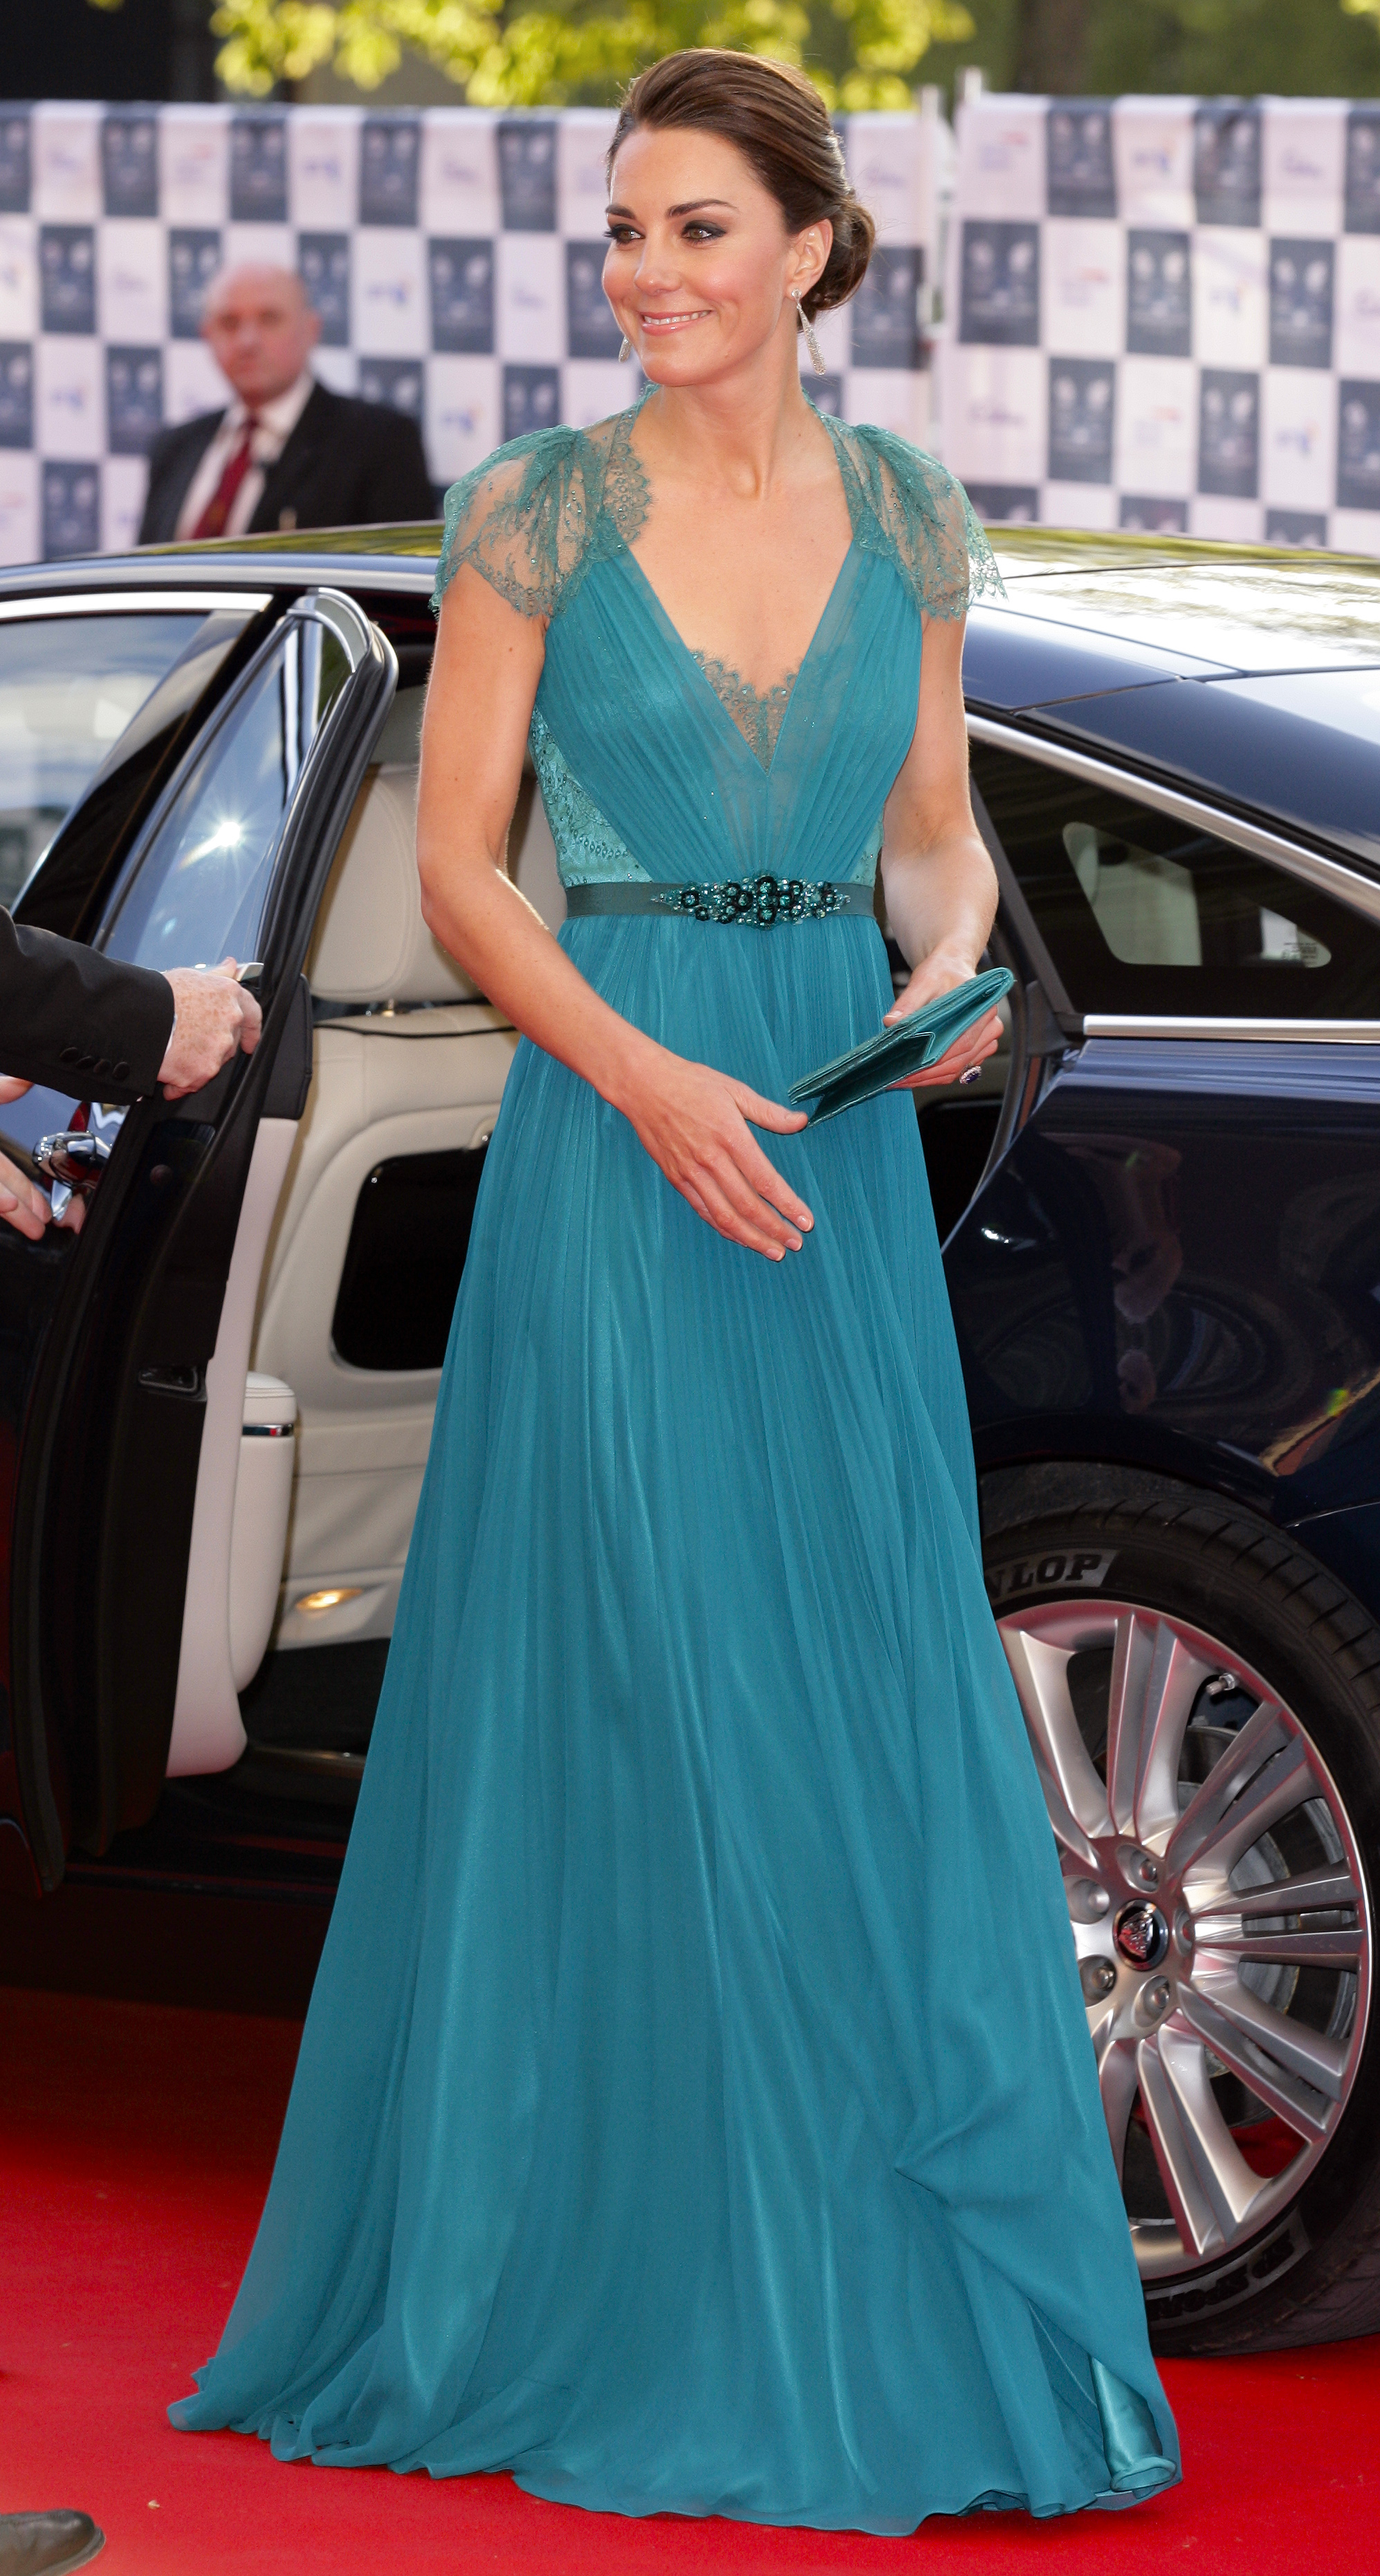 <strong>Team Teal</strong>                                   On May 11, 2012, the Duchess attended a gala event marking the countdown to the London Olympic Games in a gorgeous gown designed by the British Jenny Packham.